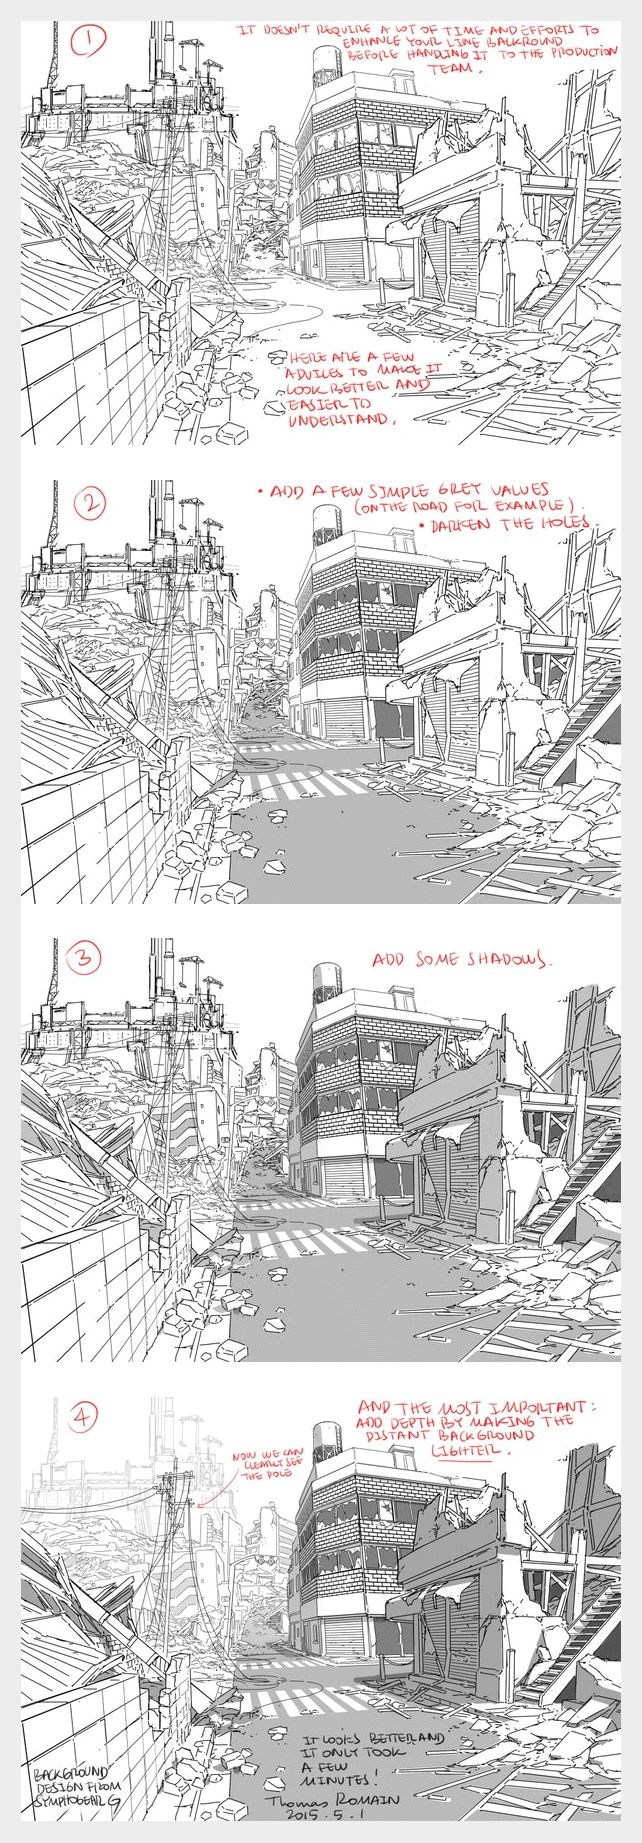 How to enhance a background - by Thomas Romain (one of the few foreigners working in the anime industry in Japan)